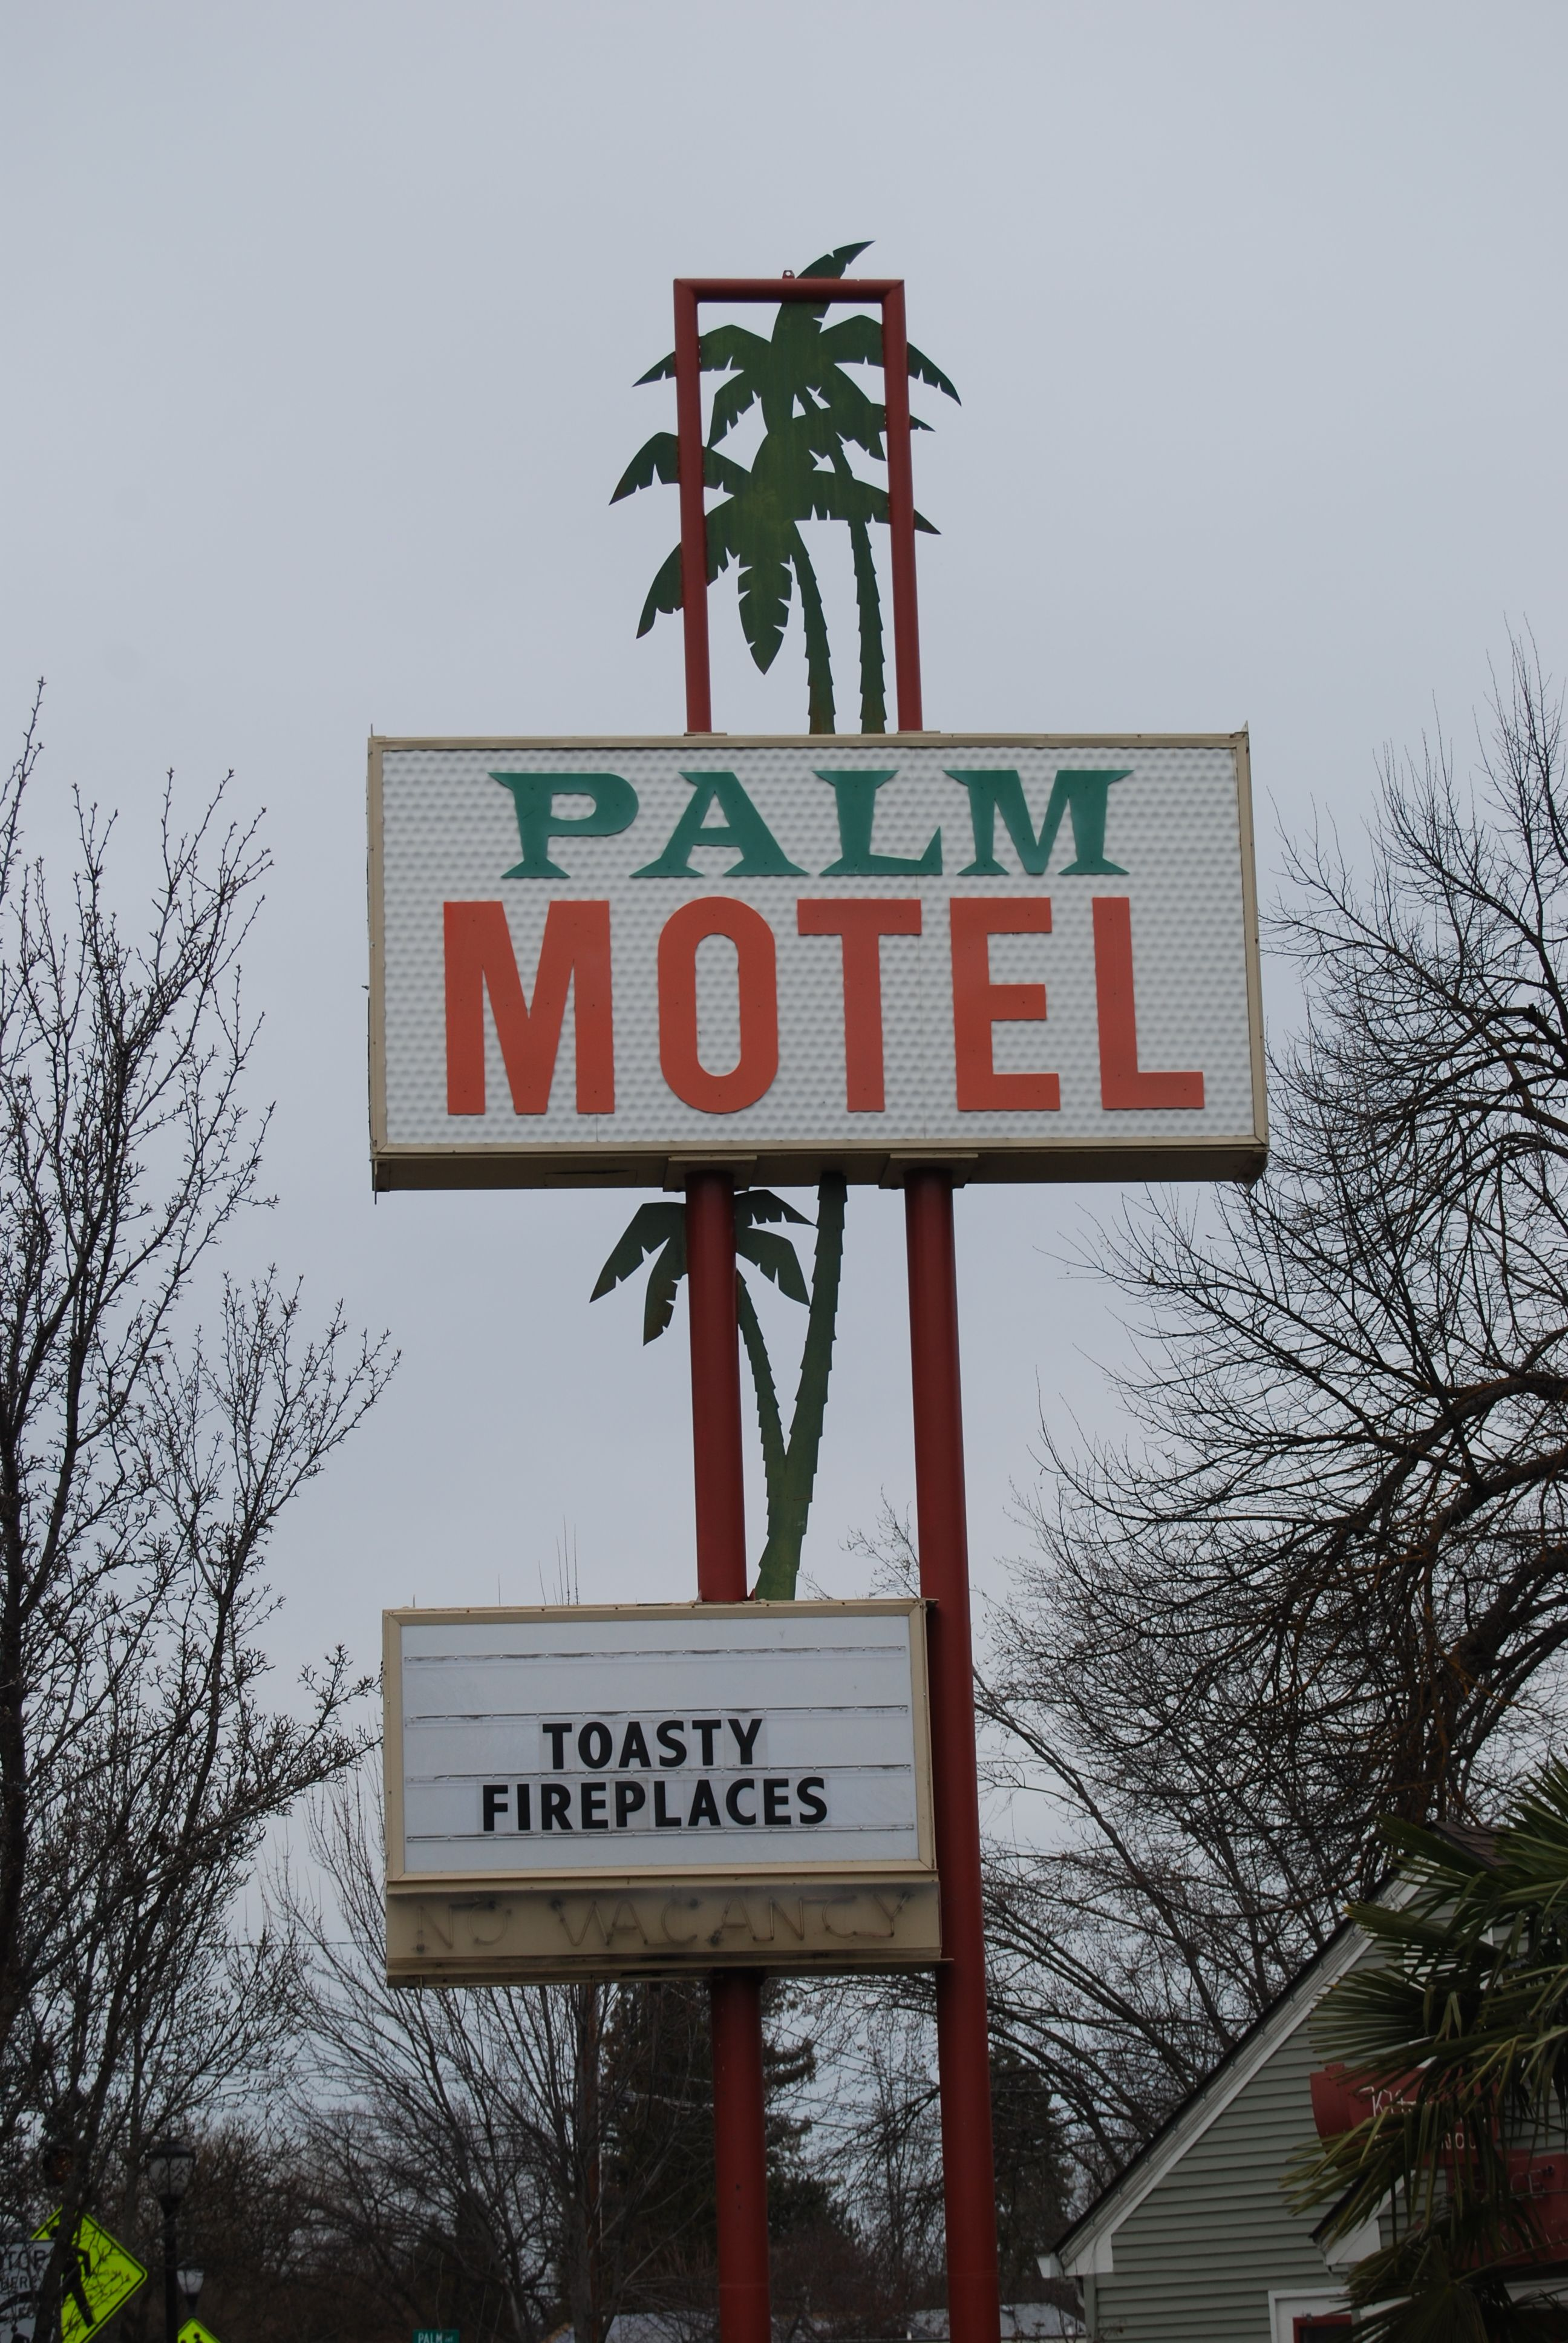 The palm motel at 1065 siskiyou blvd in ashland oregon not neon but the metal cutouts are so cool there is neon on the office building